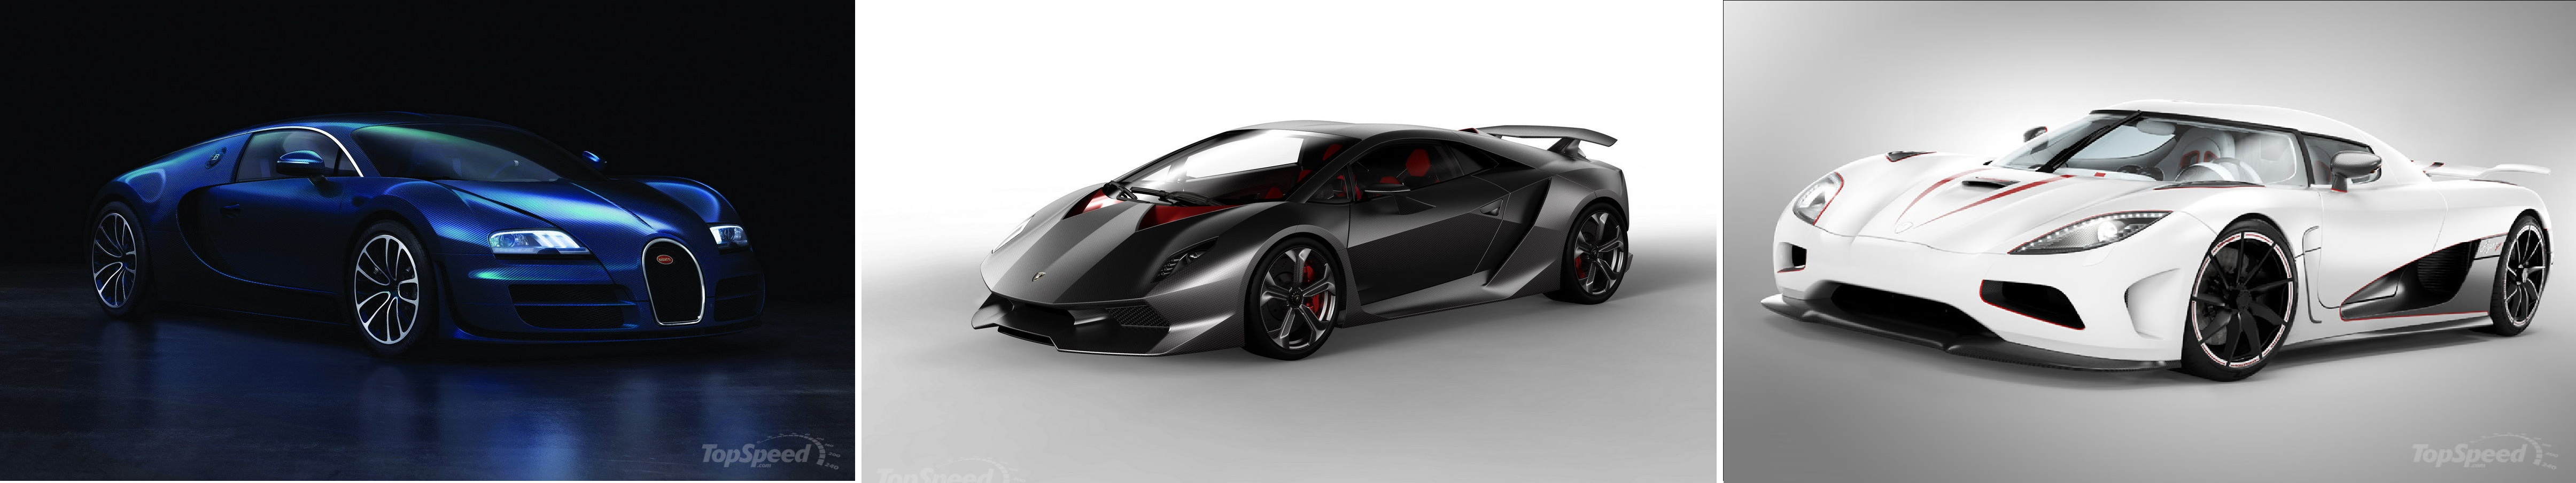 2013 lamborghini sesto elemento review top speed. Black Bedroom Furniture Sets. Home Design Ideas